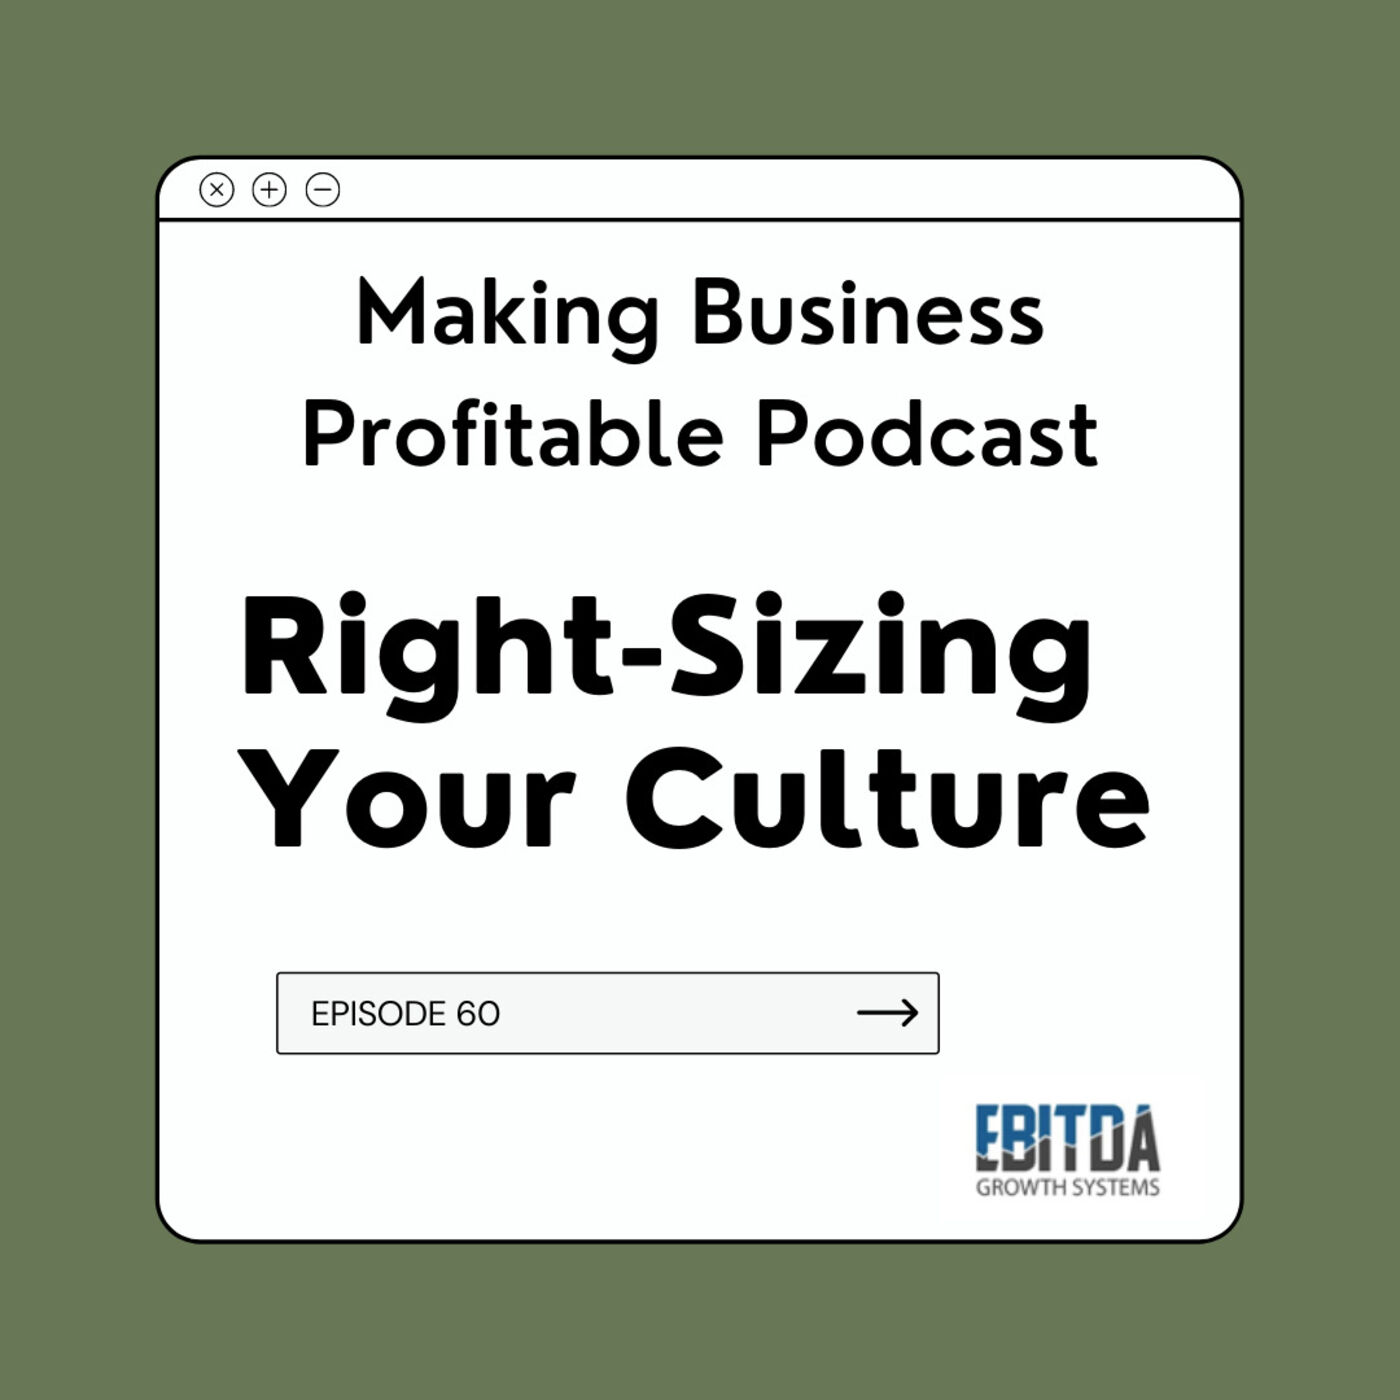 Episode 60 - Right-Sizing Your Culture